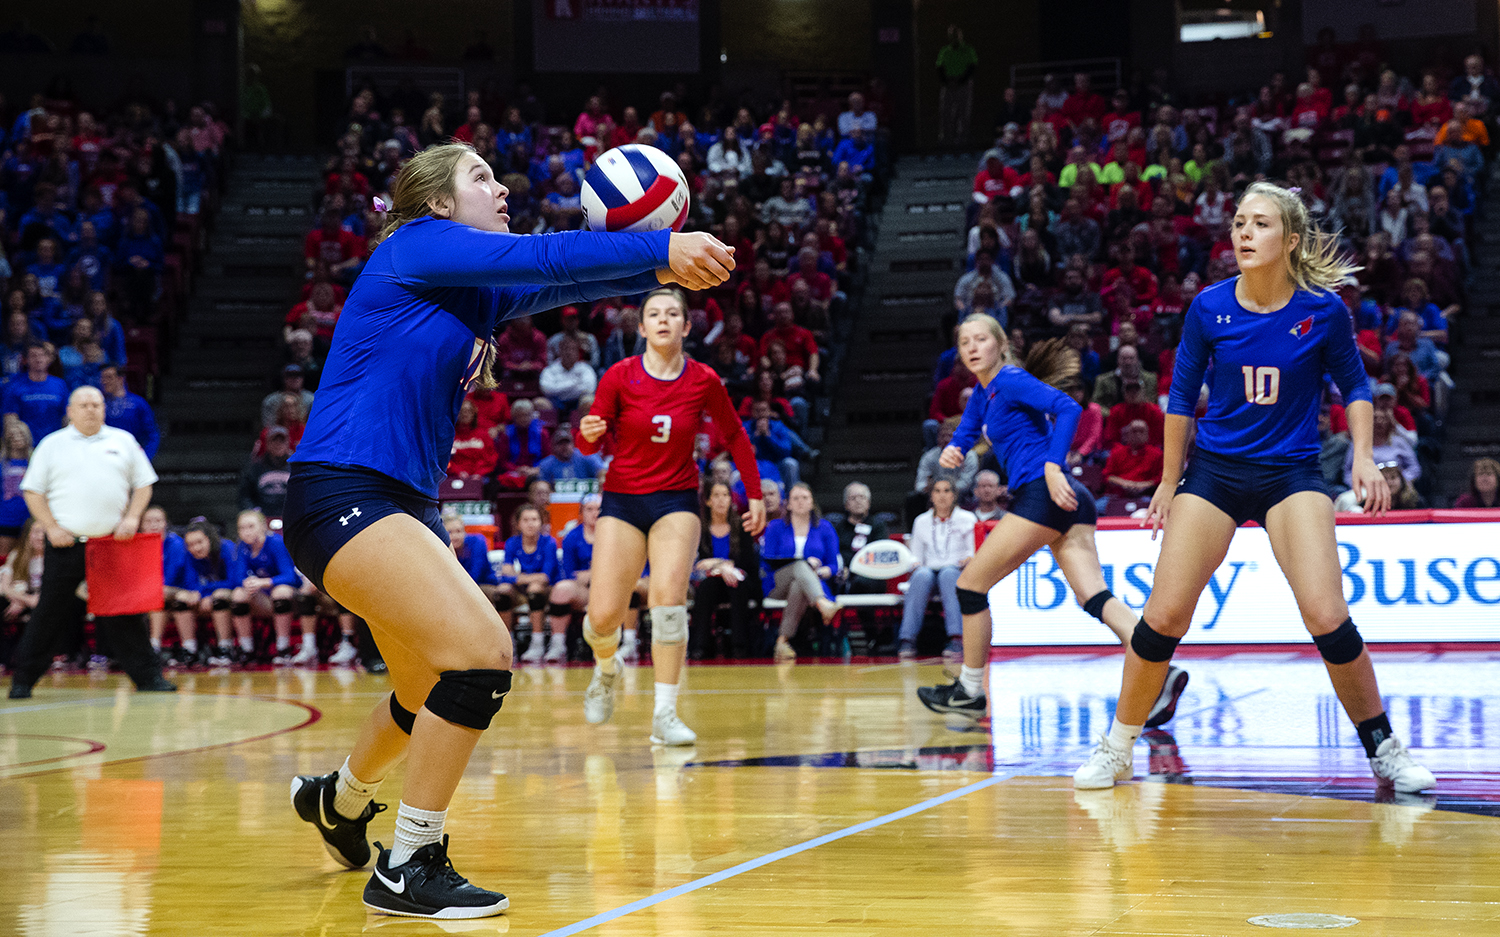 Pleasant Plains' Emily Long passes the ball during the IHSA Class 2A Volleyball championship at Redbird Arena in Normal Saturday, Nov. 10, 2018. [Ted Schurter/The State Journal-Register]